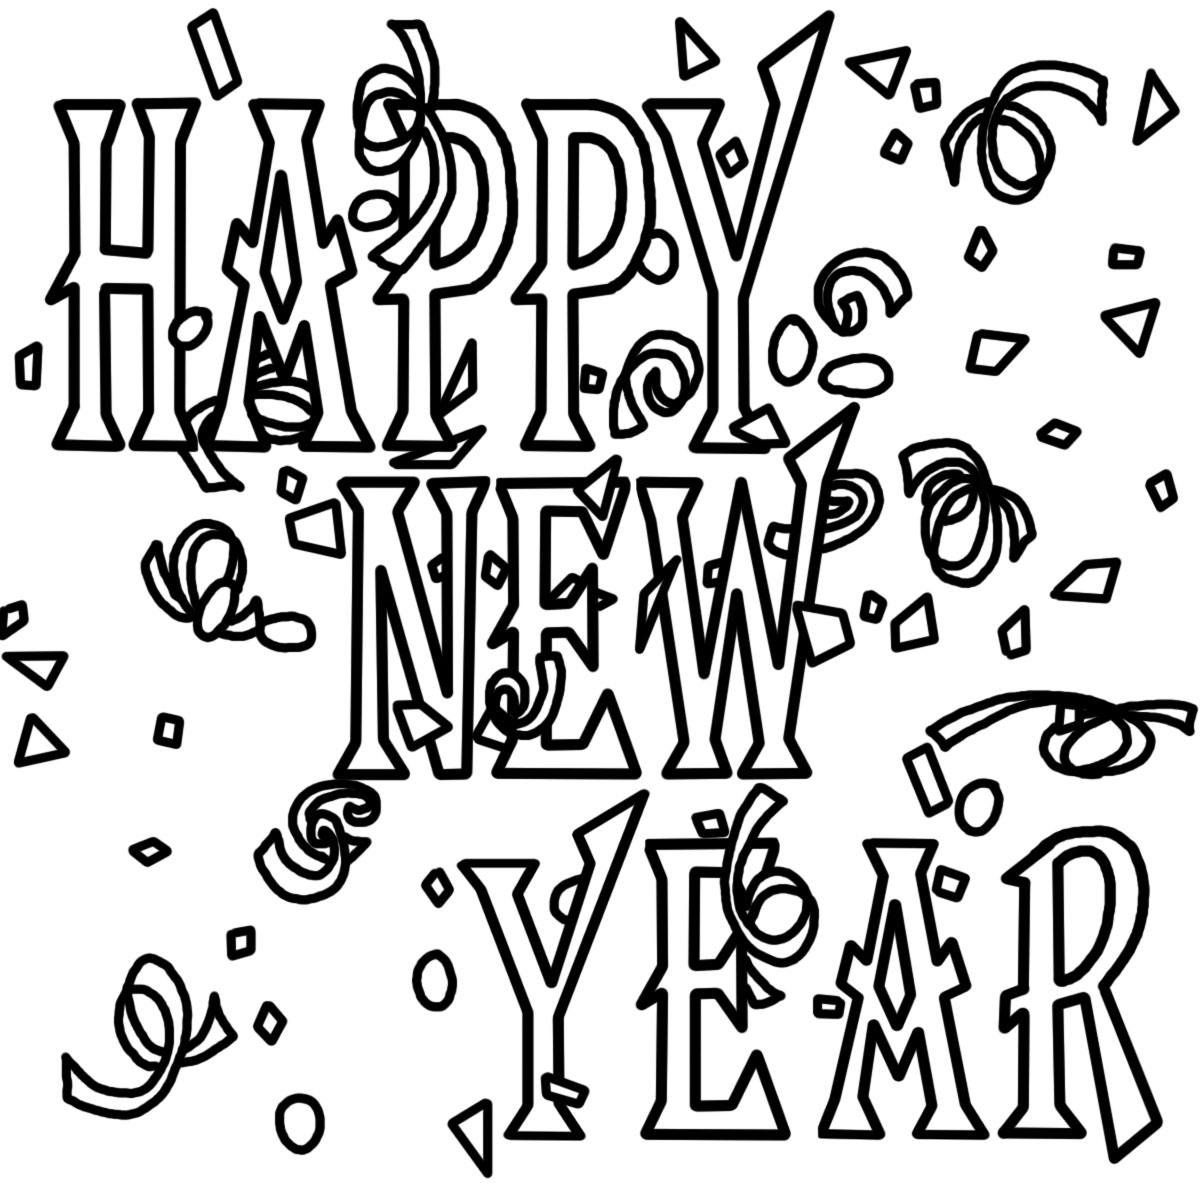 Uncategorized Free Printable New Years Coloring Pages free printable new years coloring pages for kids year page